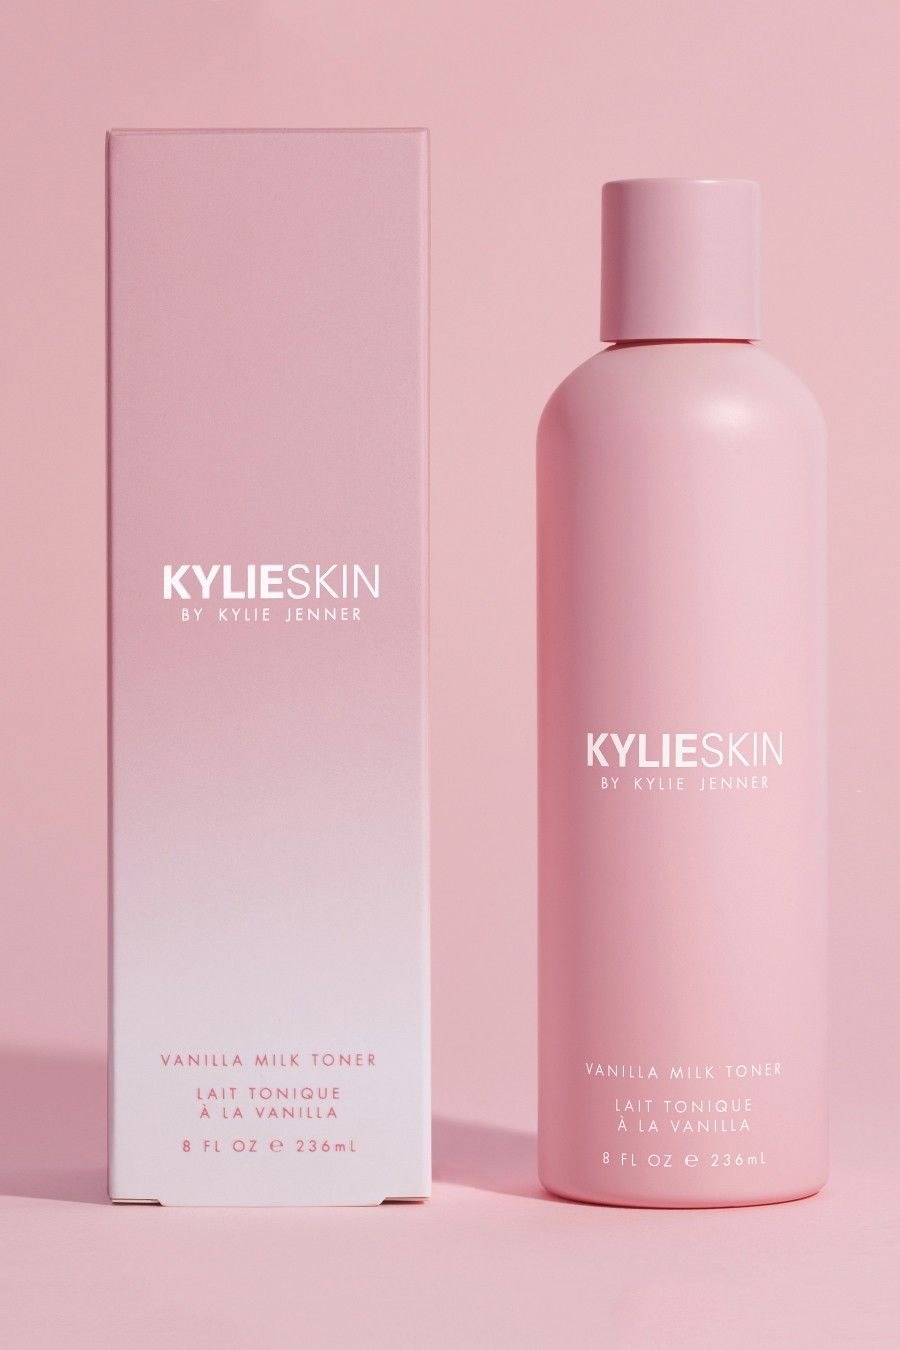 Here S Every Single Product In Kylie Jenner S Skincare Line Kylie Skin Diy Dry Skin Care Dry Skin Diy Dry Skin Care